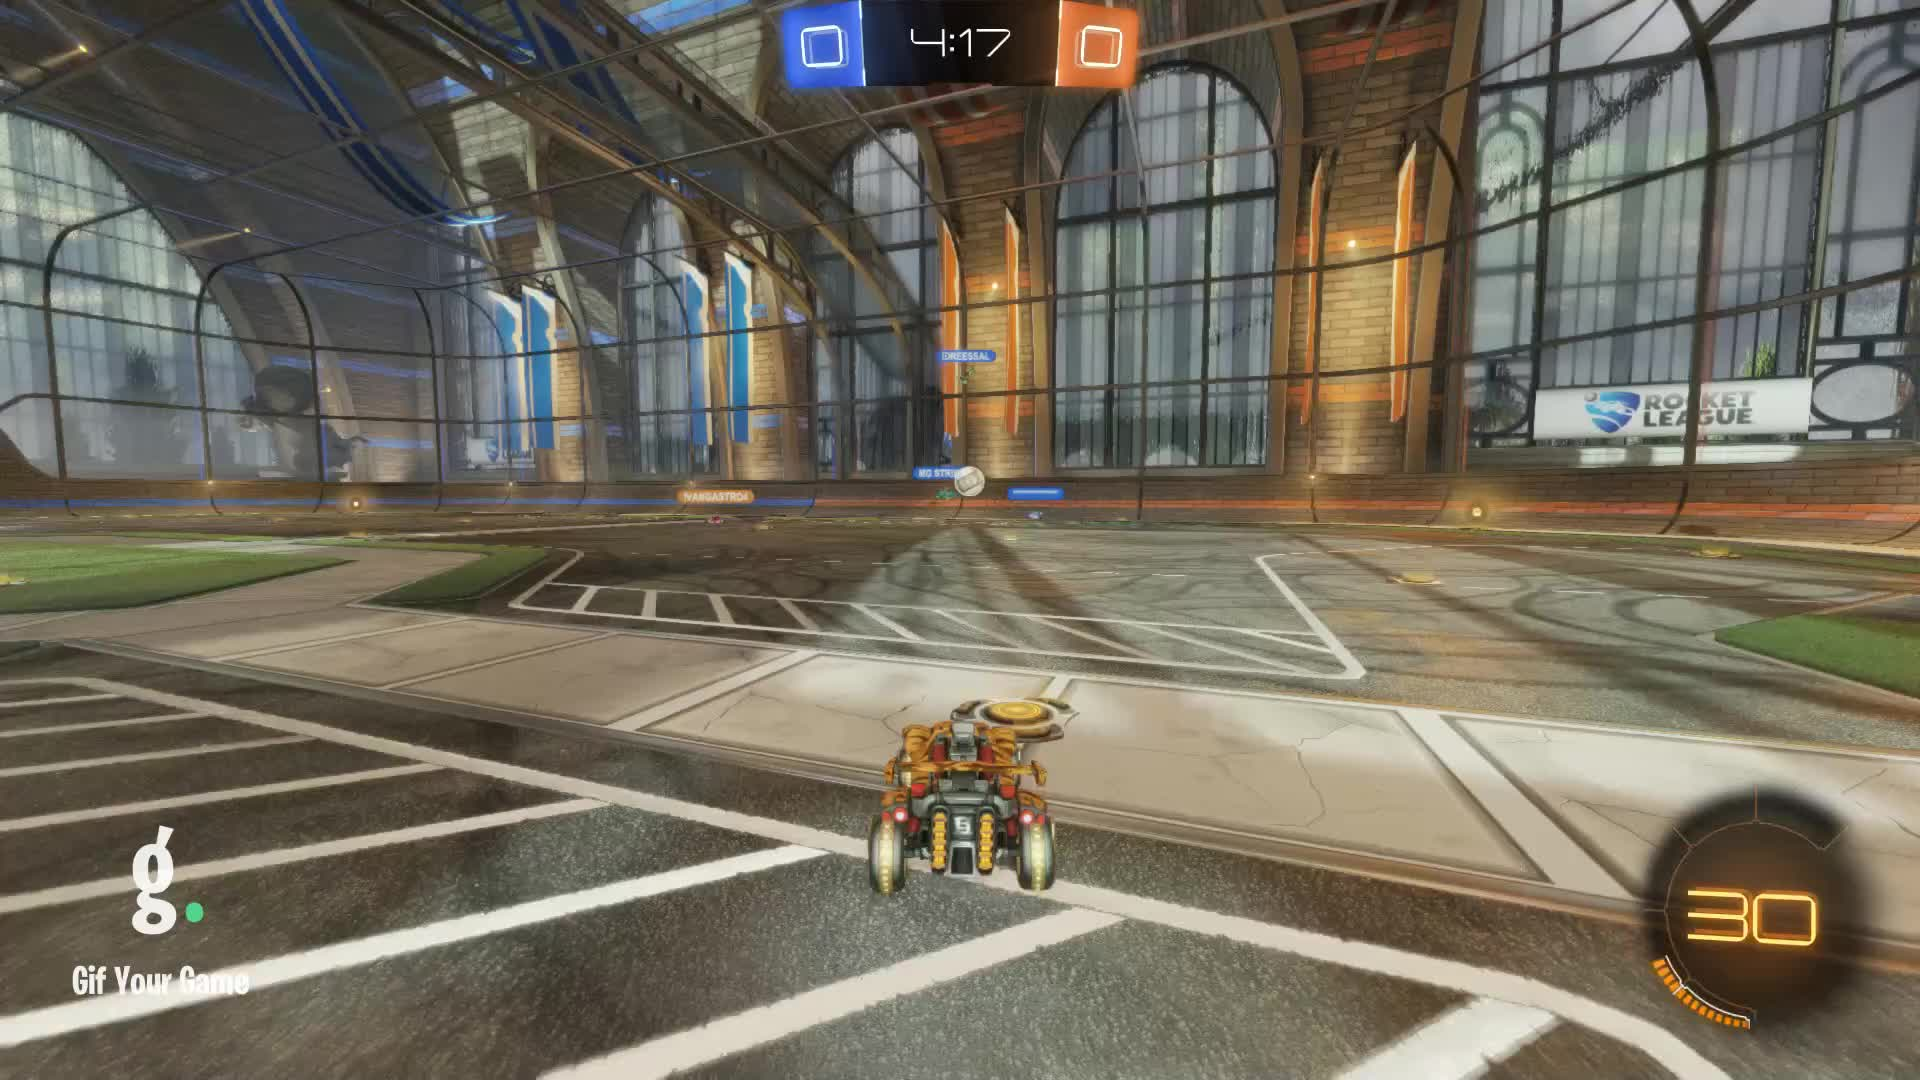 Gif Your Game, GifYourGame, Goal, Rocket League, RocketLeague, SyncBE, Goal 1: SyncBE GIFs